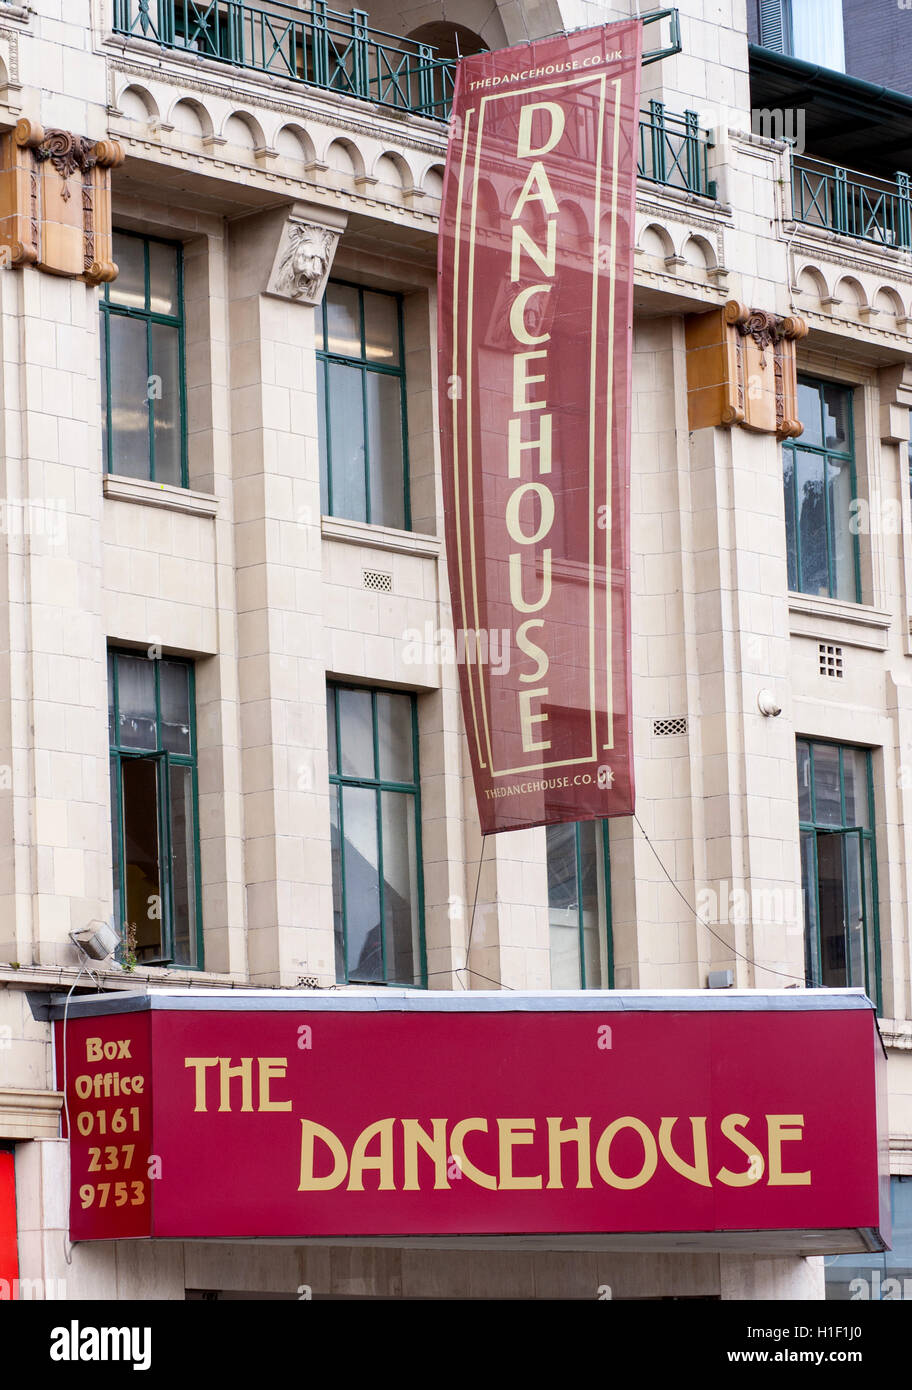 The Dancehouse Oxford Road Manchester - Stock Image